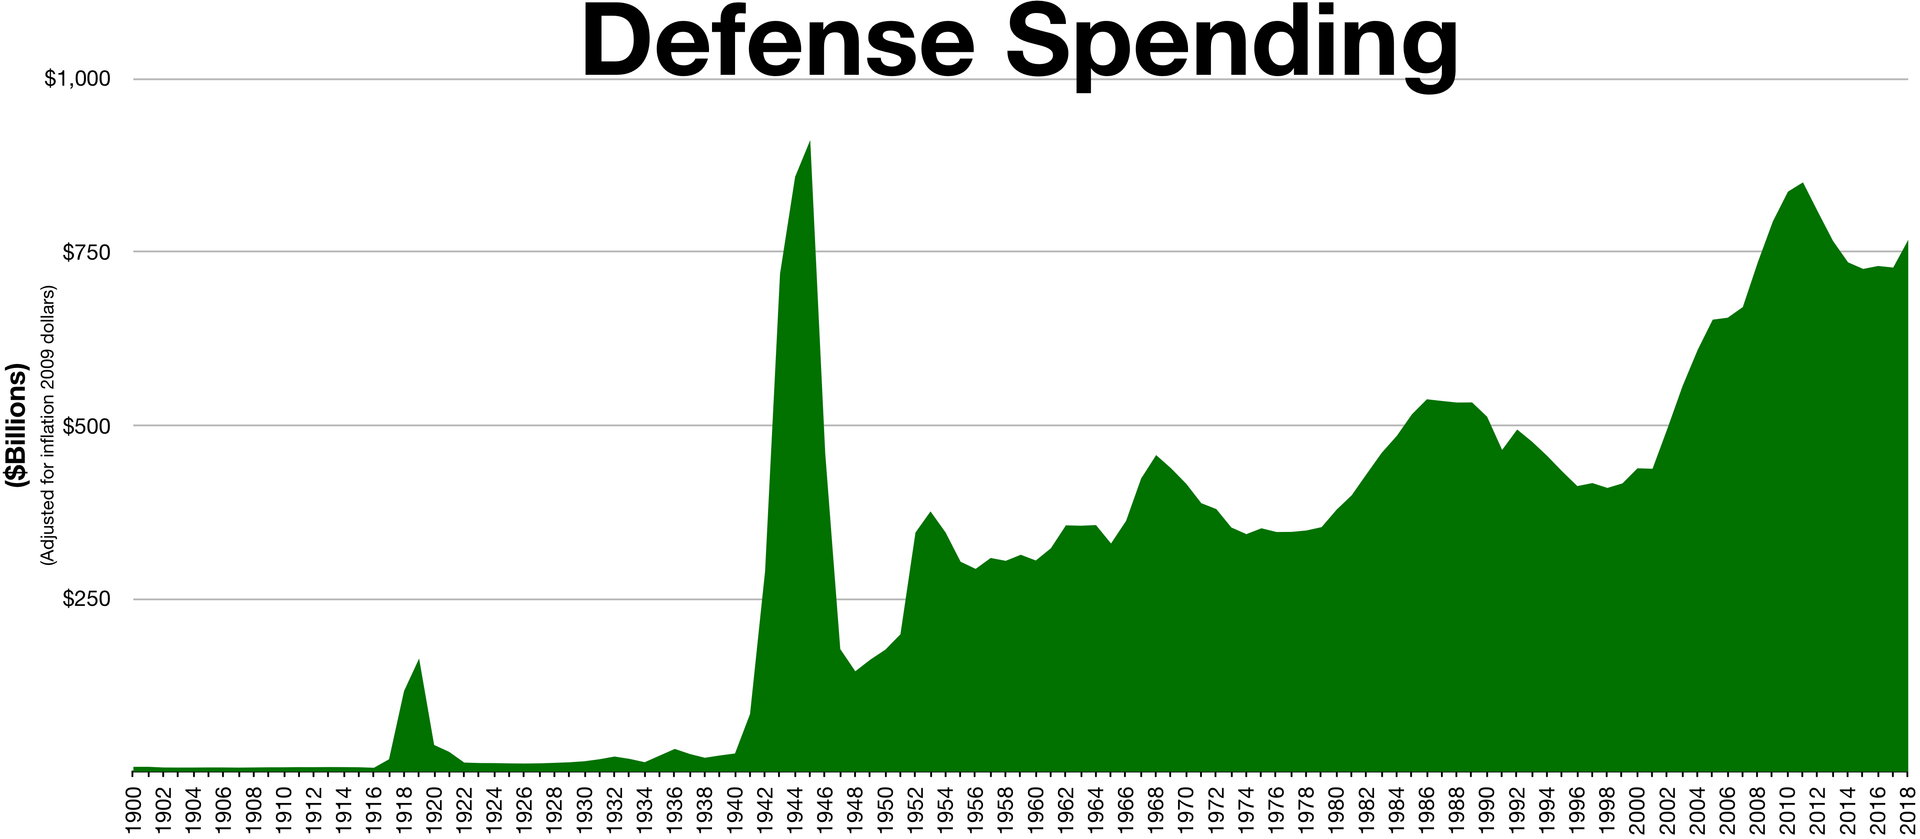 1920px-Defense_spending.png